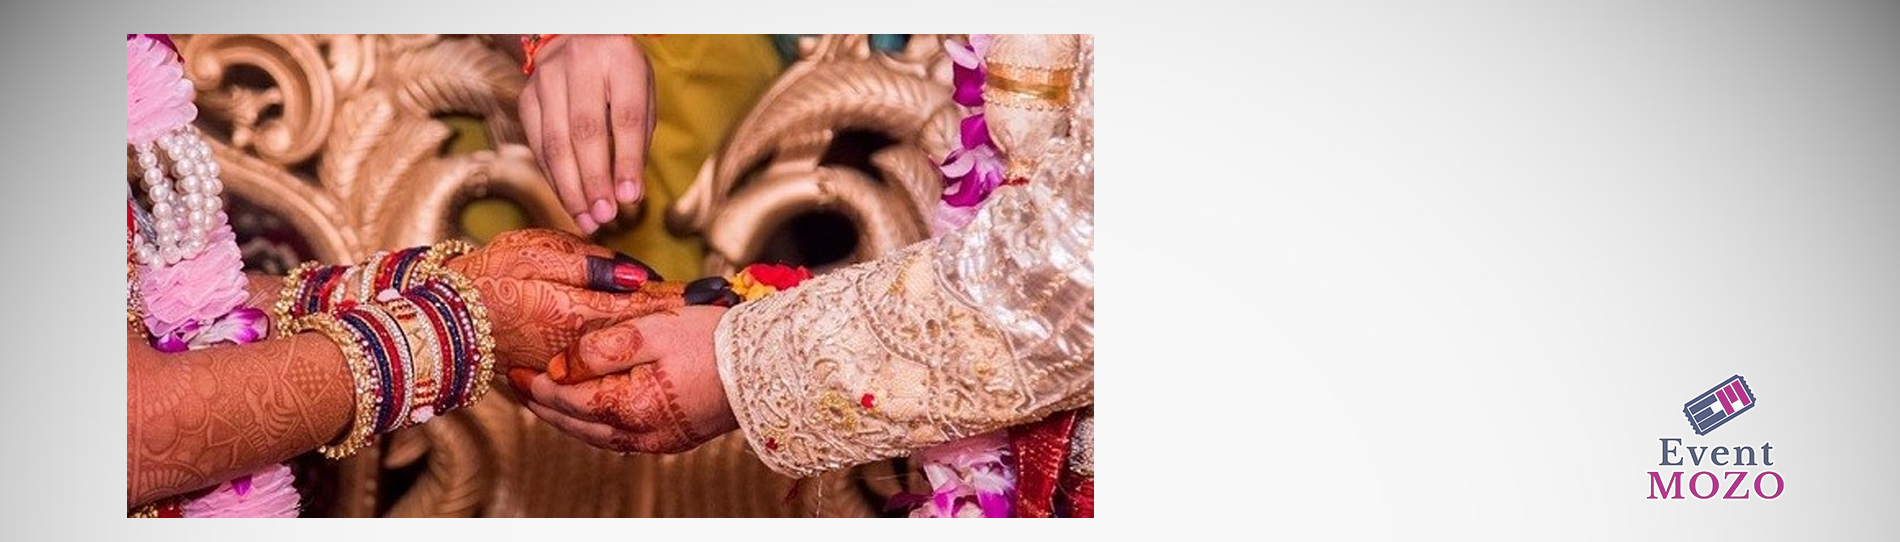 EventMozo Indian, S. Asian Wedding Open House, Rangoli's Manassas